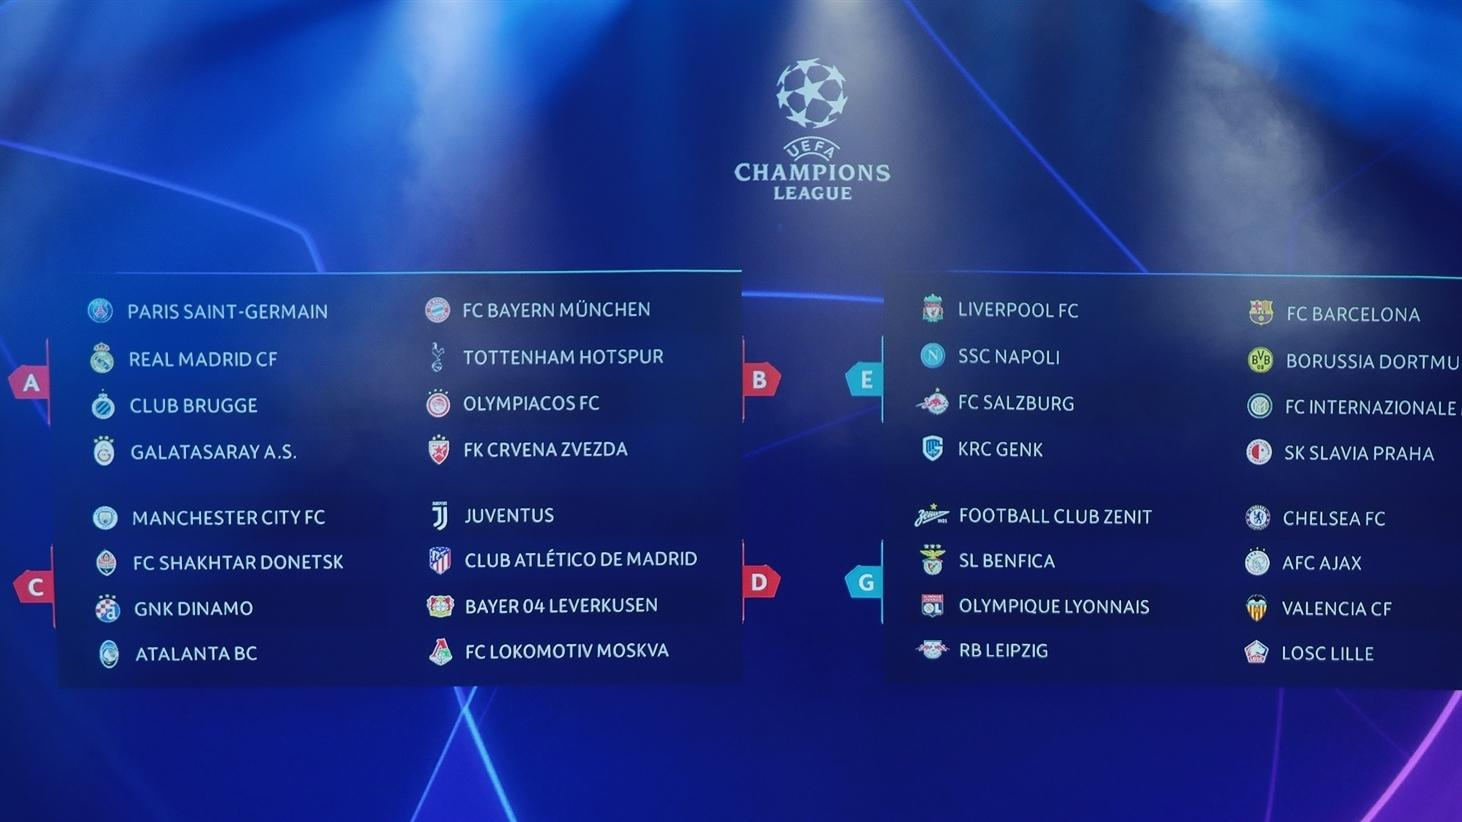 champions league group stage draw made in monaco uefa champions league uefa com champions league group stage draw made